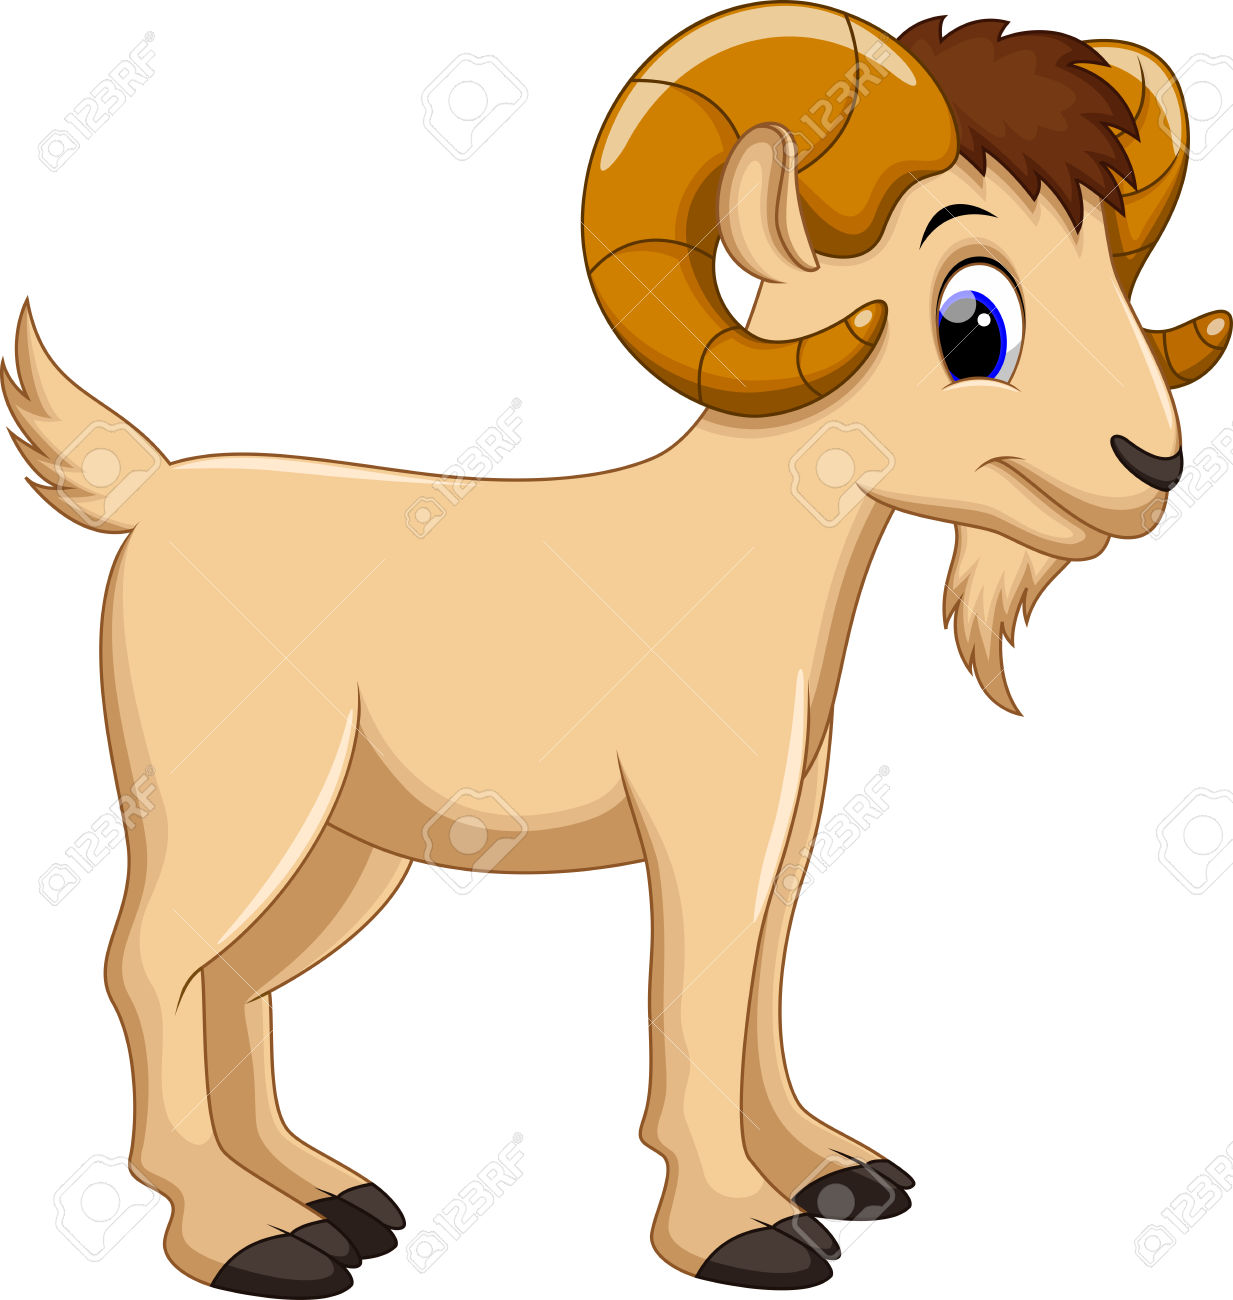 Goat clipart #7, Download drawings